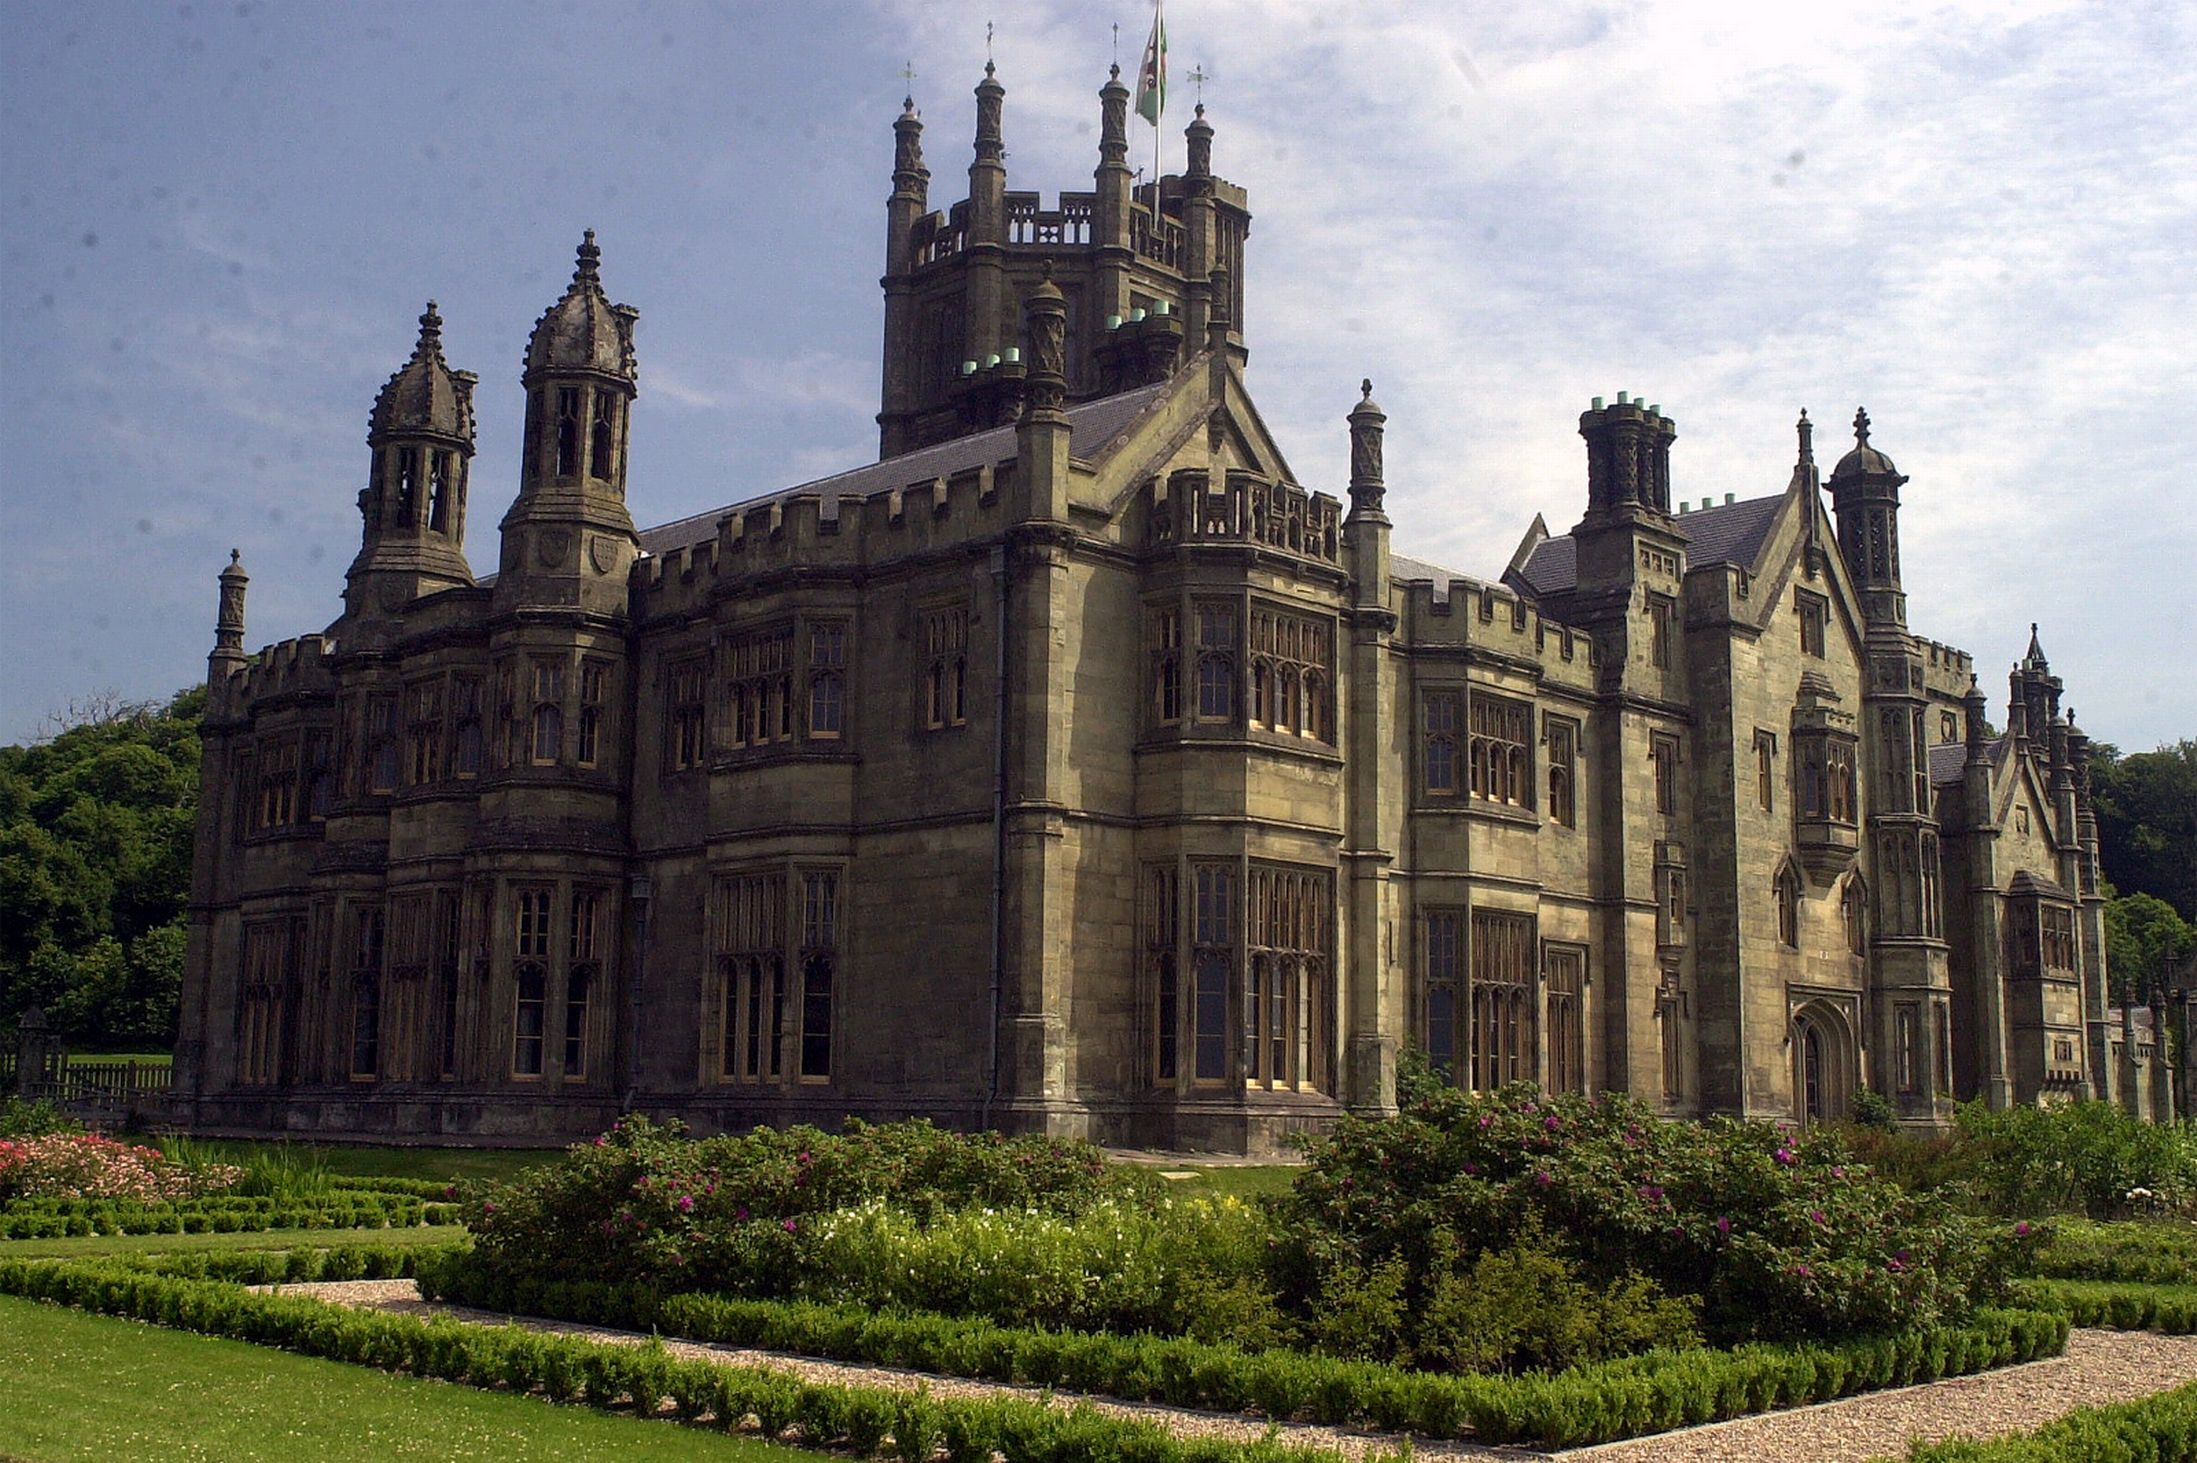 margam-castle-6242986